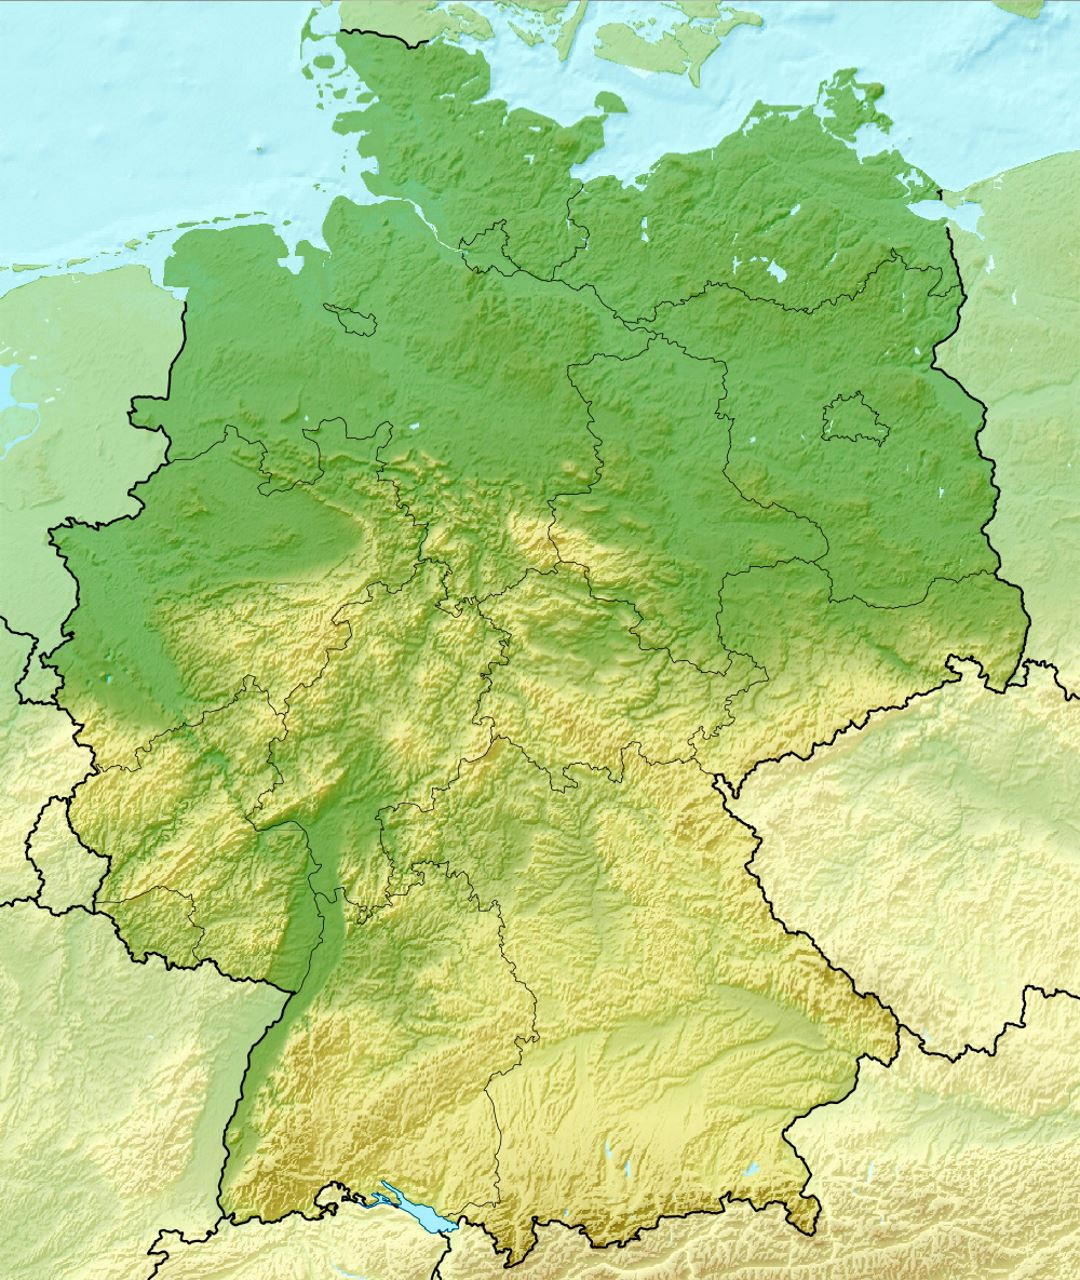 Detailed relief map of Germany | Germany | Europe | Mapsland ...